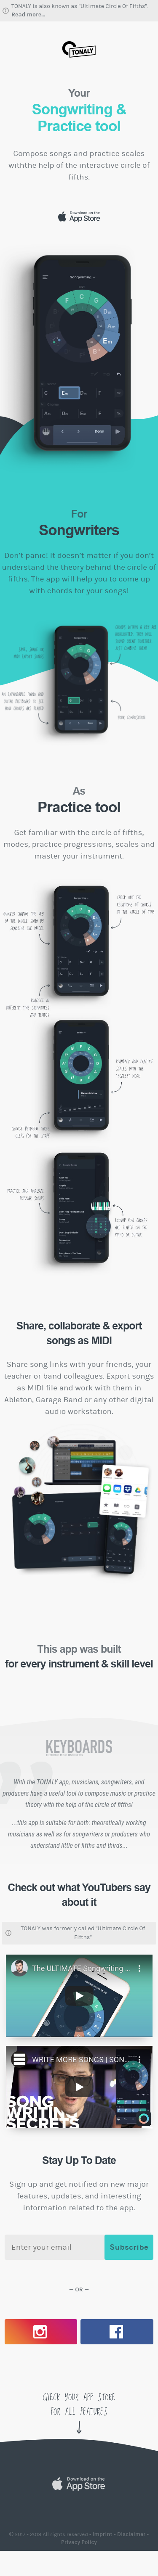 Example of Design for Arts & Entertainment, Music & Audio, Music Reference, Mobile Landing Page by tonaly.app | Mobile Landing Page Design